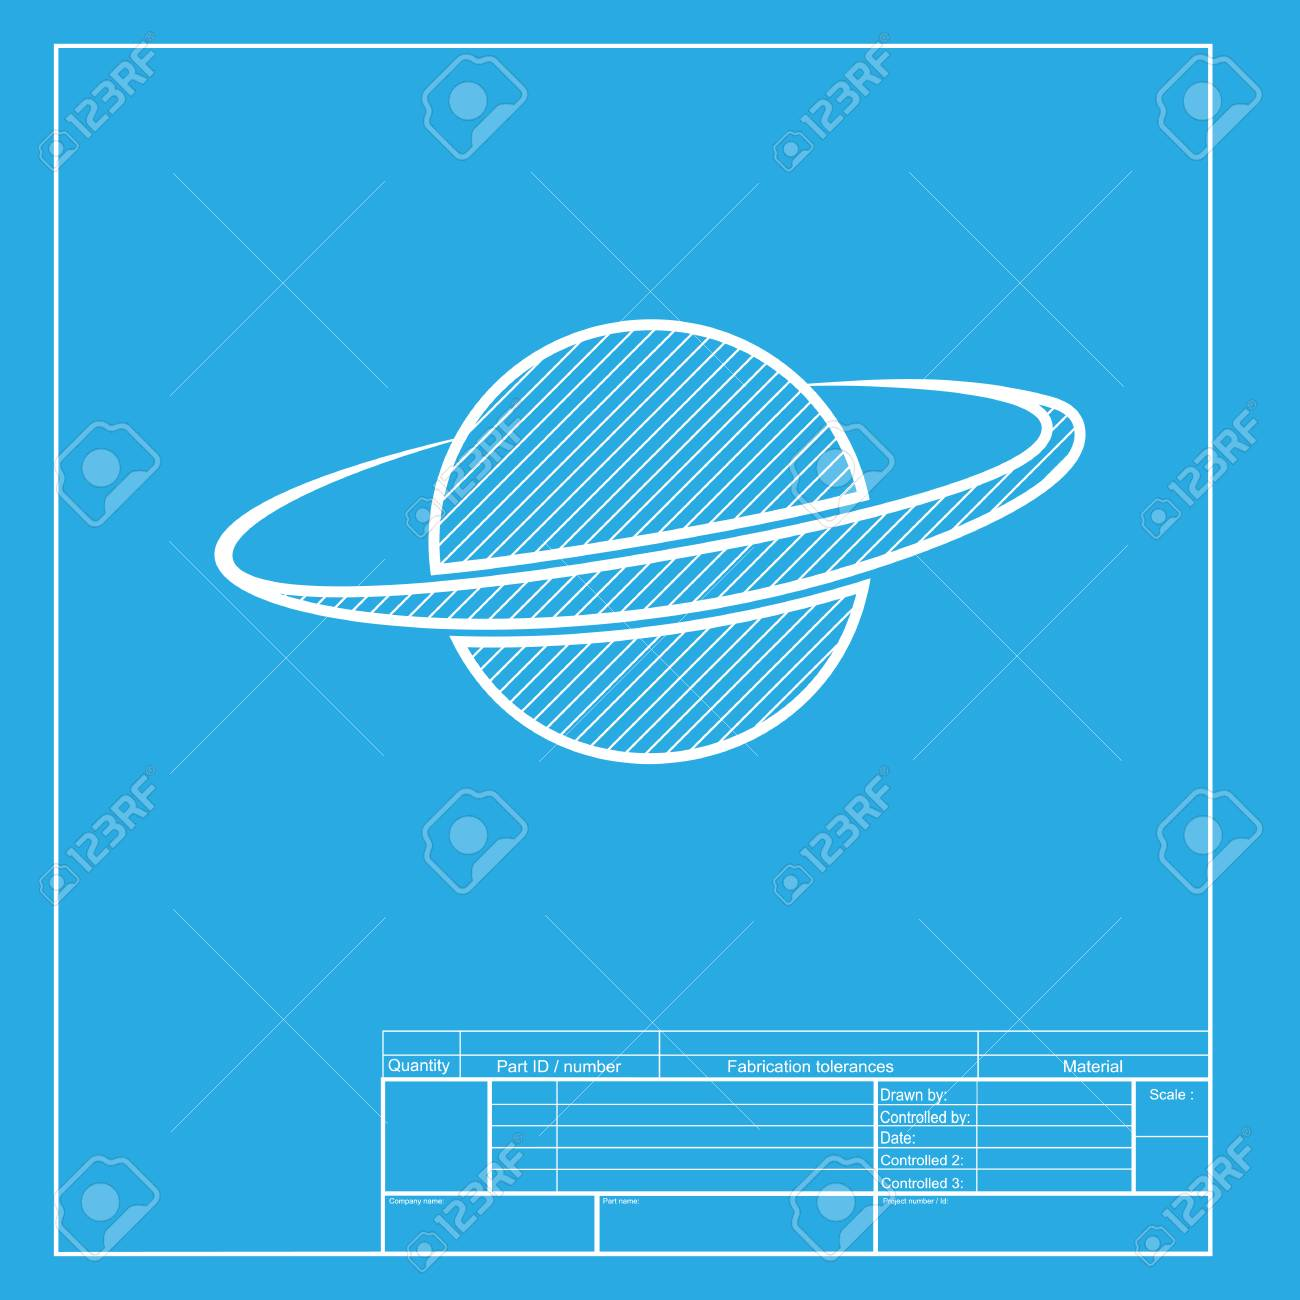 planet in space sign white section of icon on blueprint template